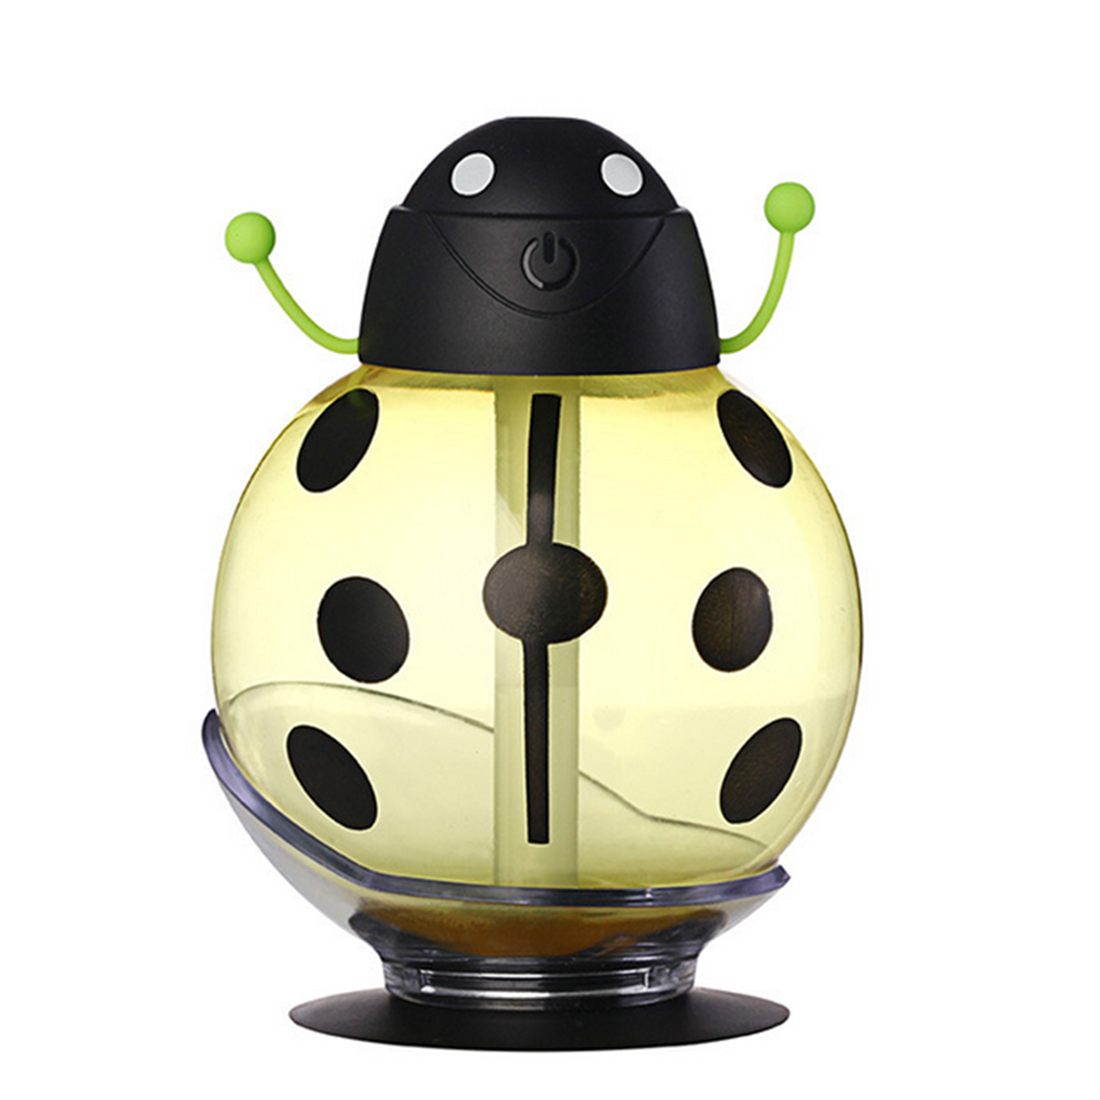 260ML Detachable Mini USB Beetle Humidifier For Home Office Use Night Light - Yellow